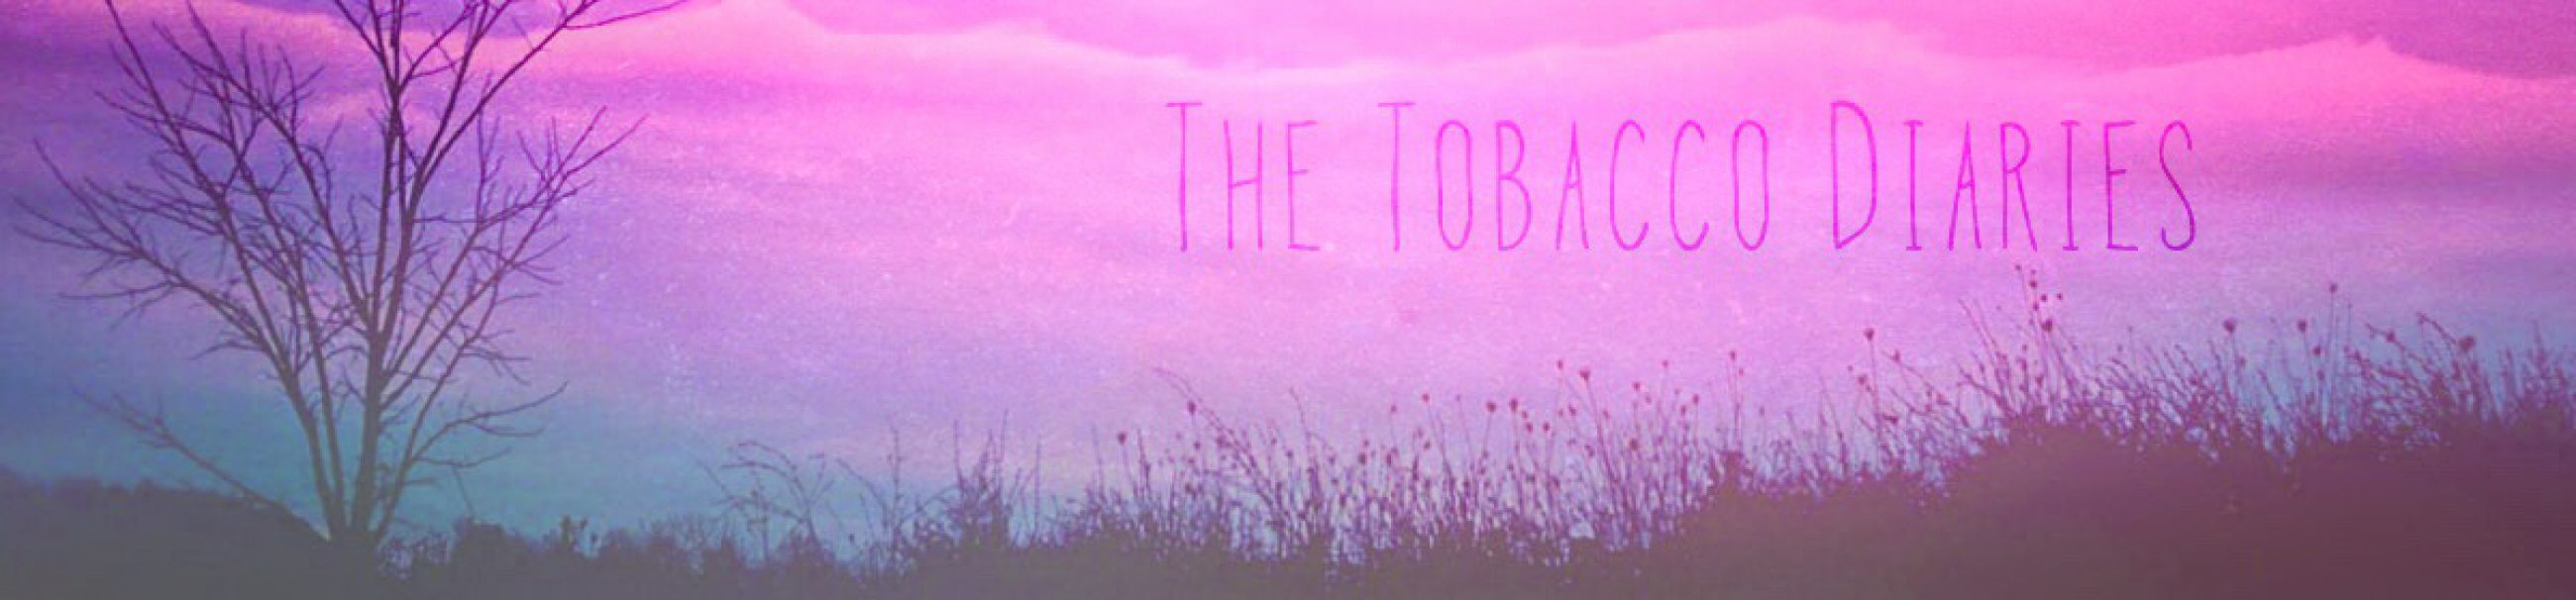 The Tobacco Diaries